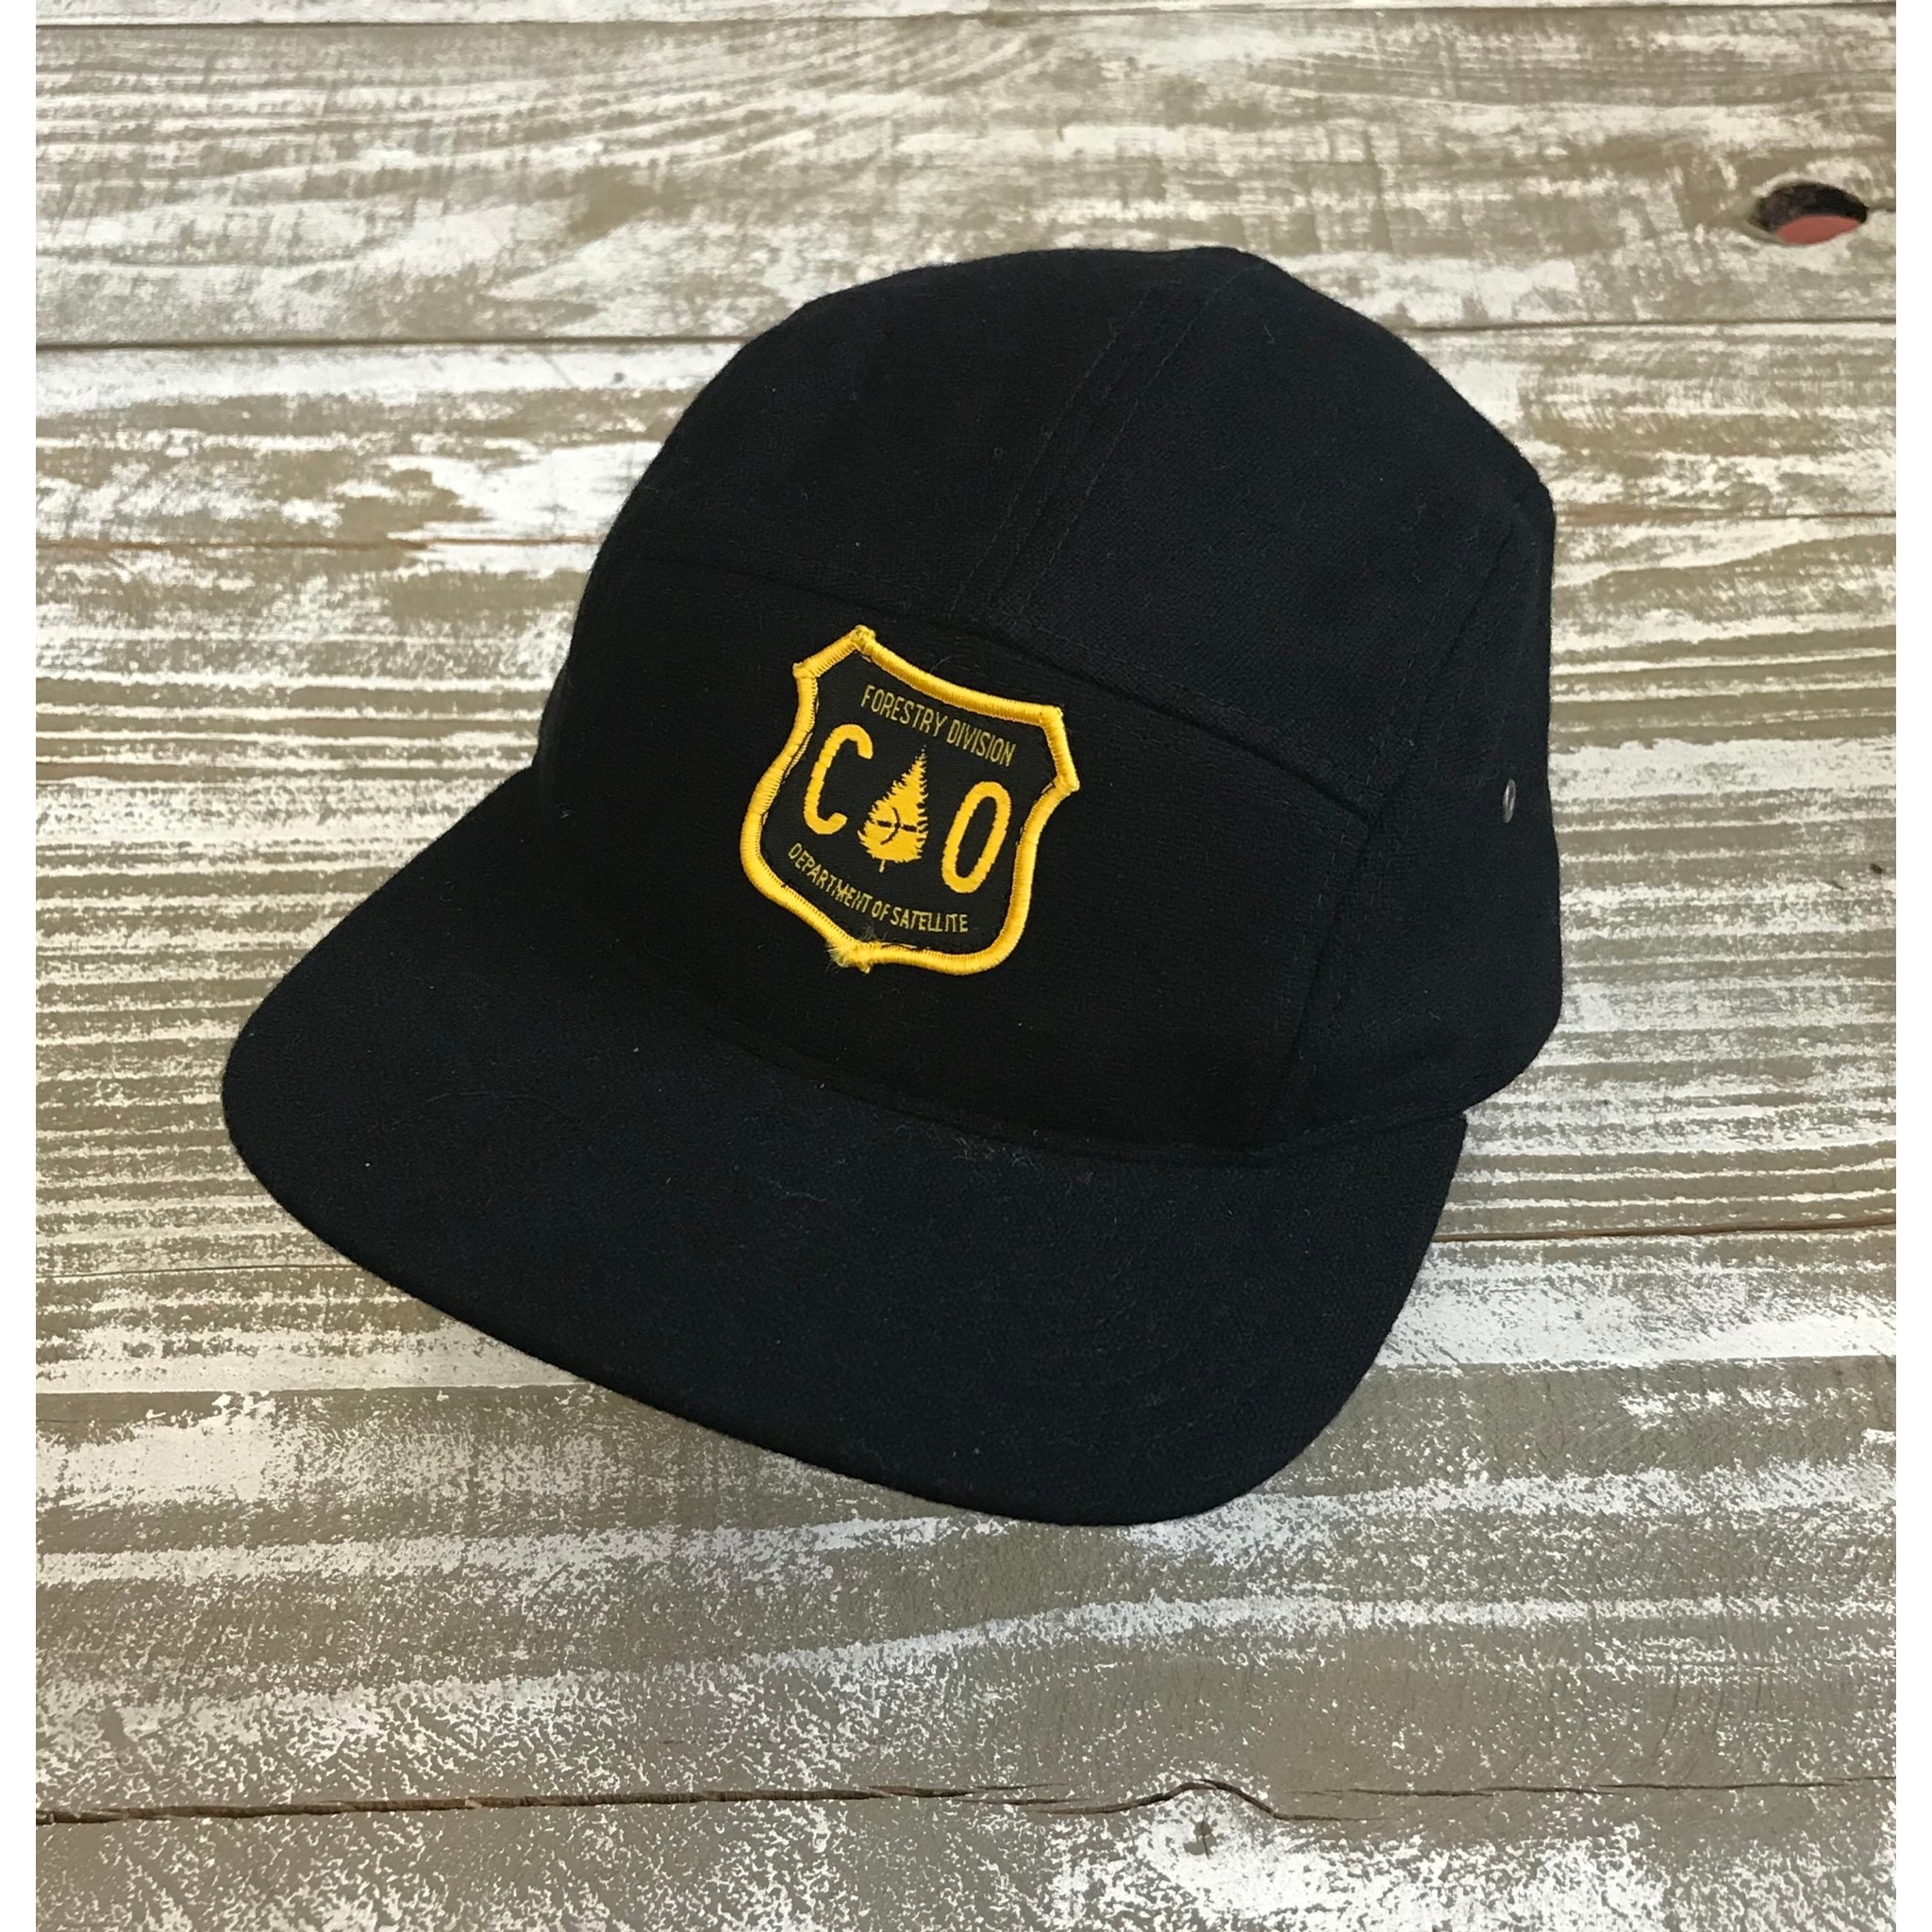 Satellite Wool Cap (Black/Forestry Division)